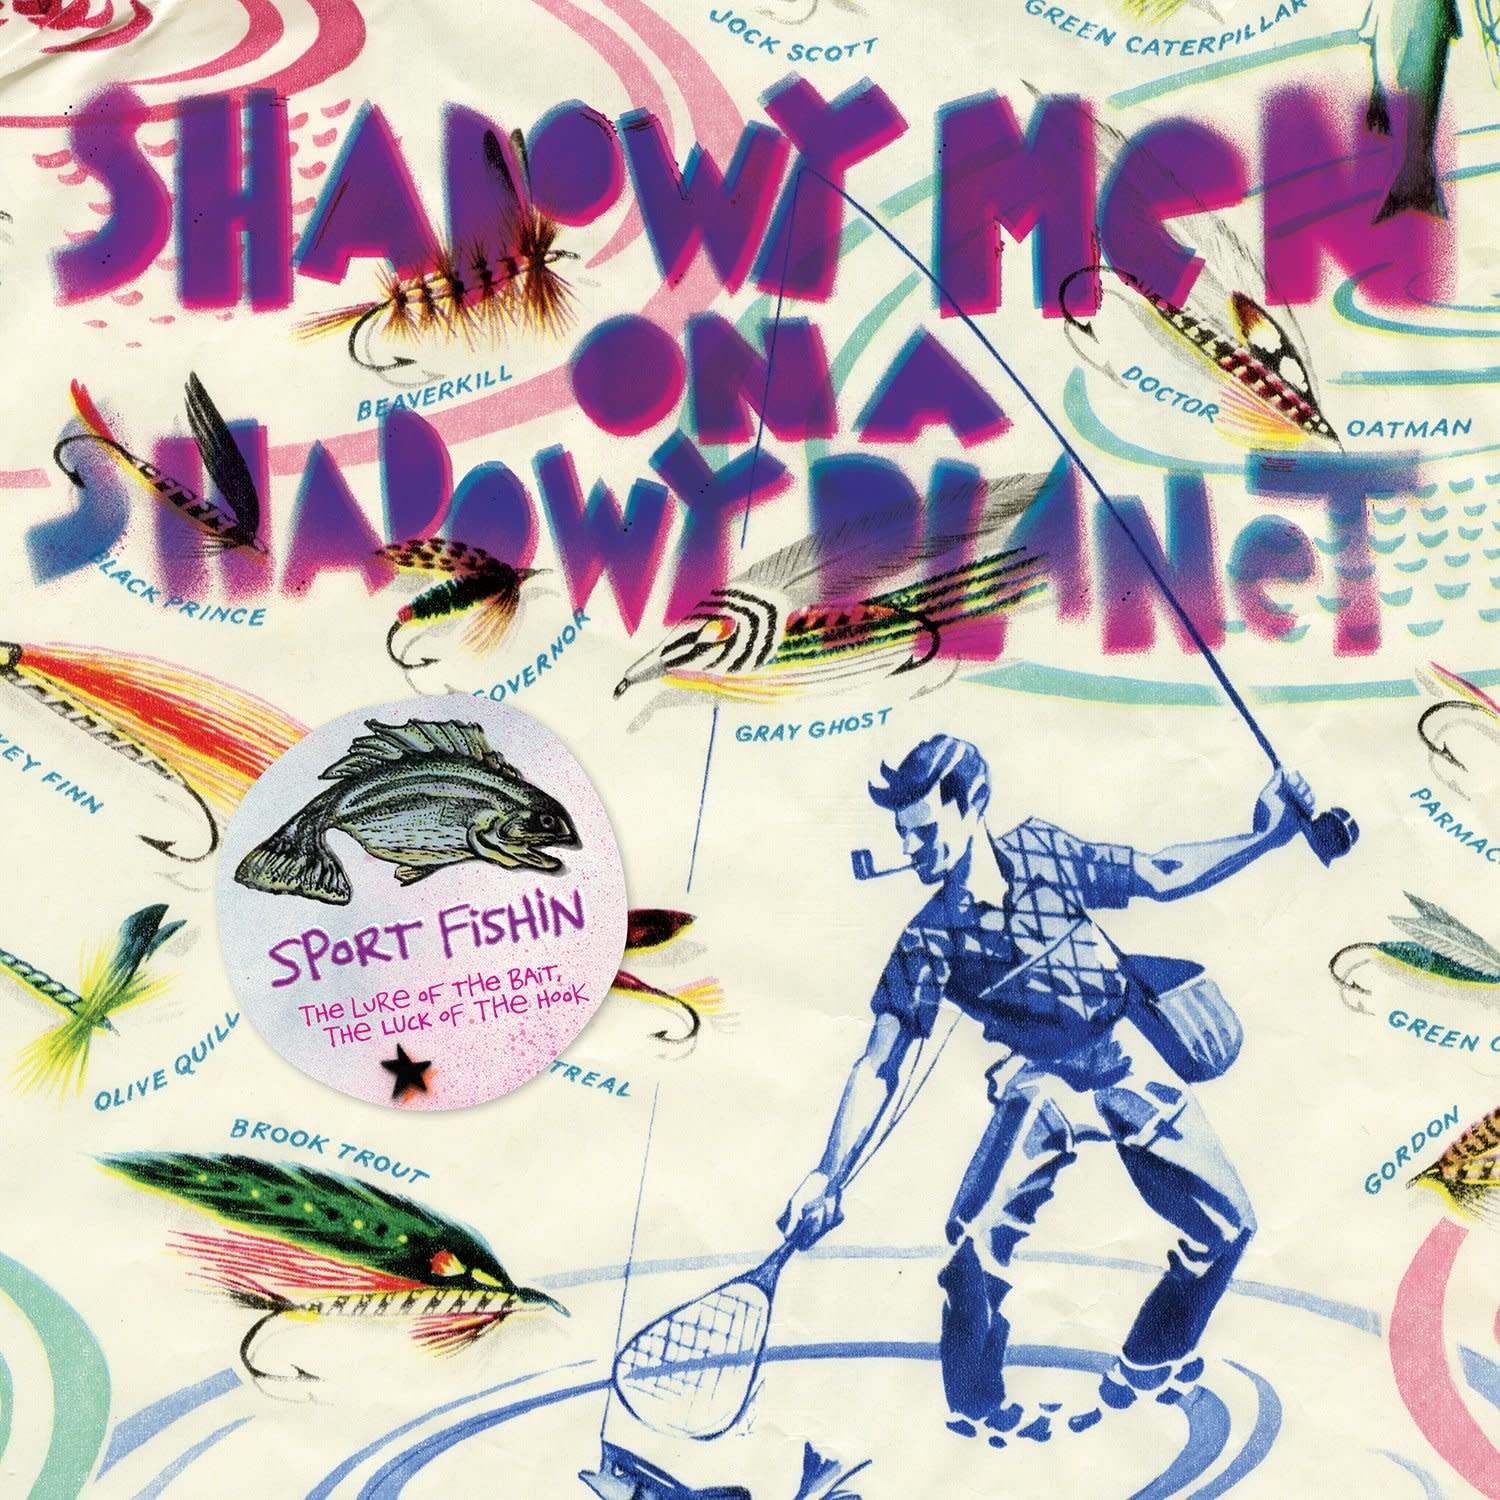 Shadowy Men On A Shadowy Planet – Sport Fishin' - The Lure Of The Bait, The Luck Of The Hook